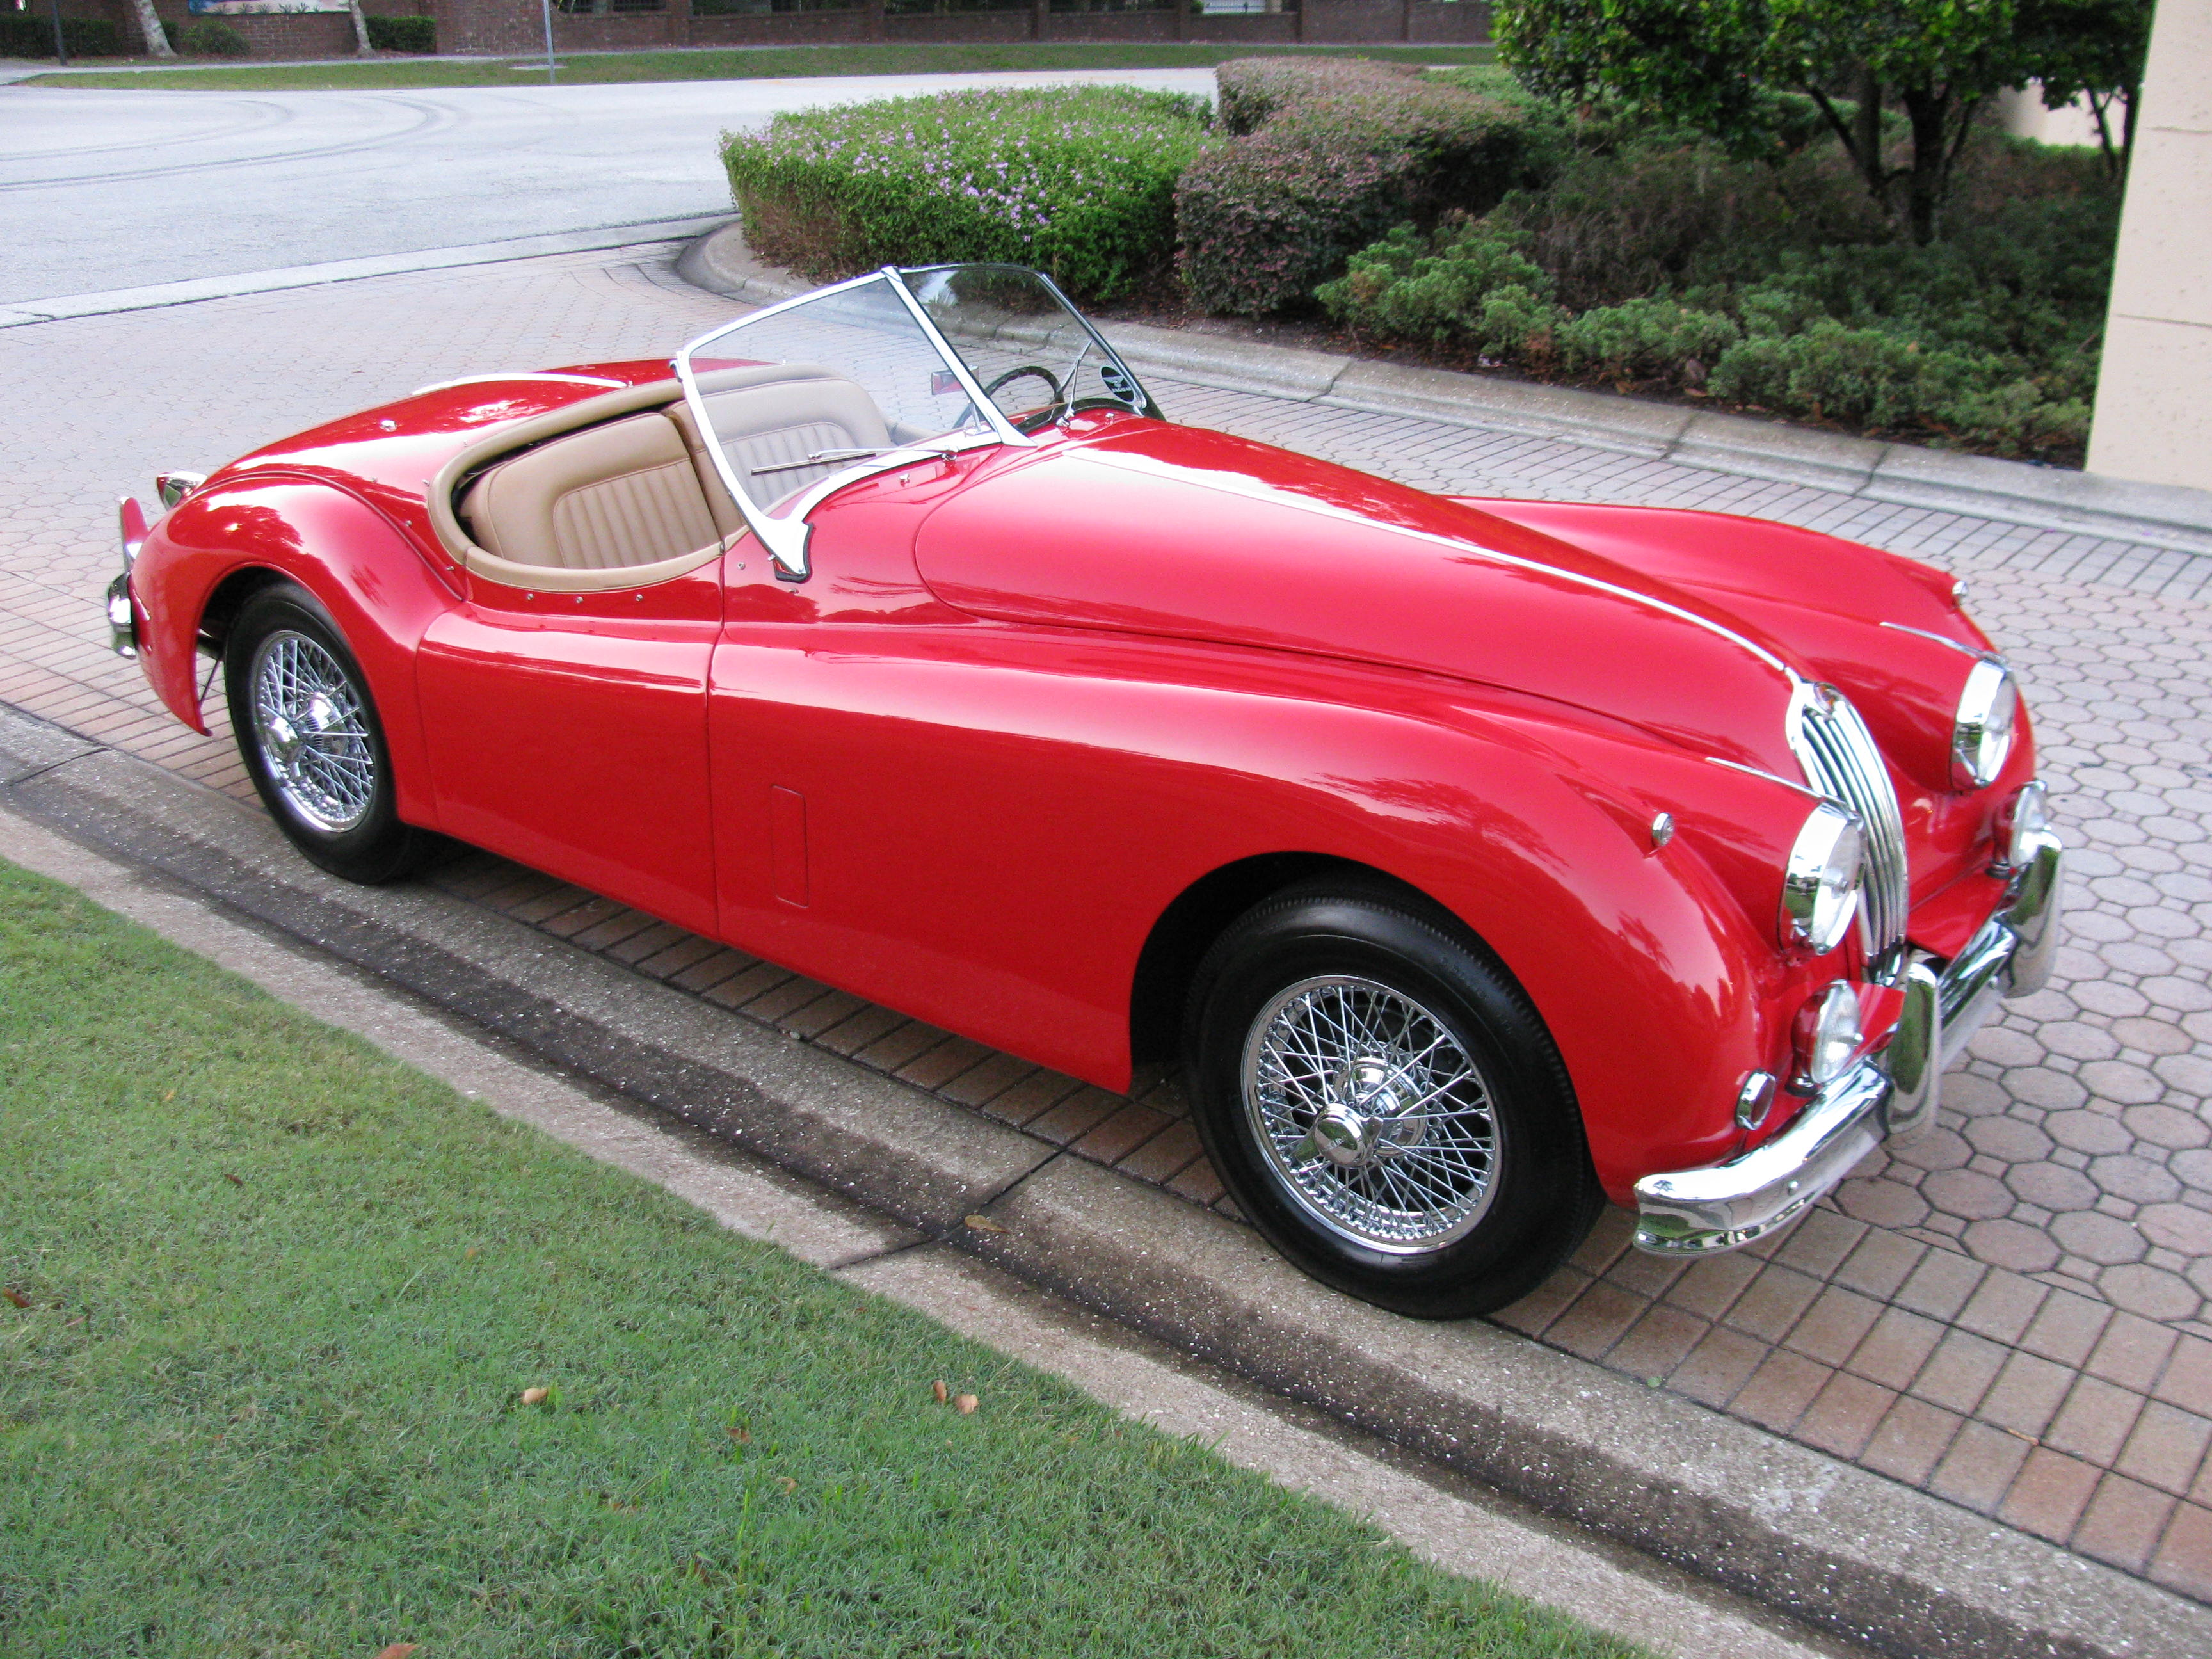 coupe results in week bring jaguar a se auction trailer